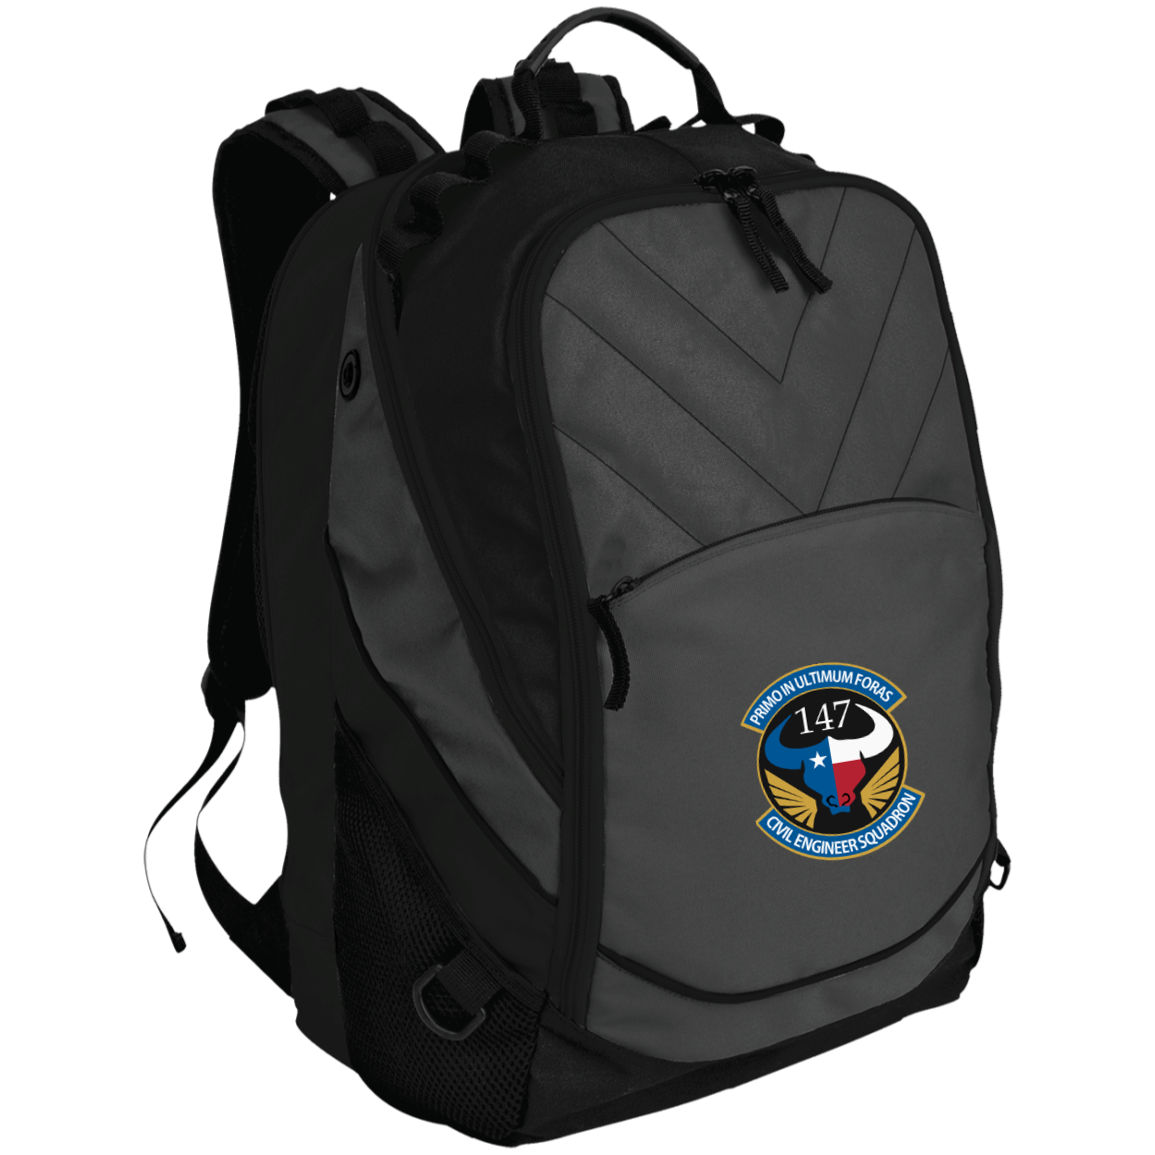 BG100 Laptop Computer Backpack